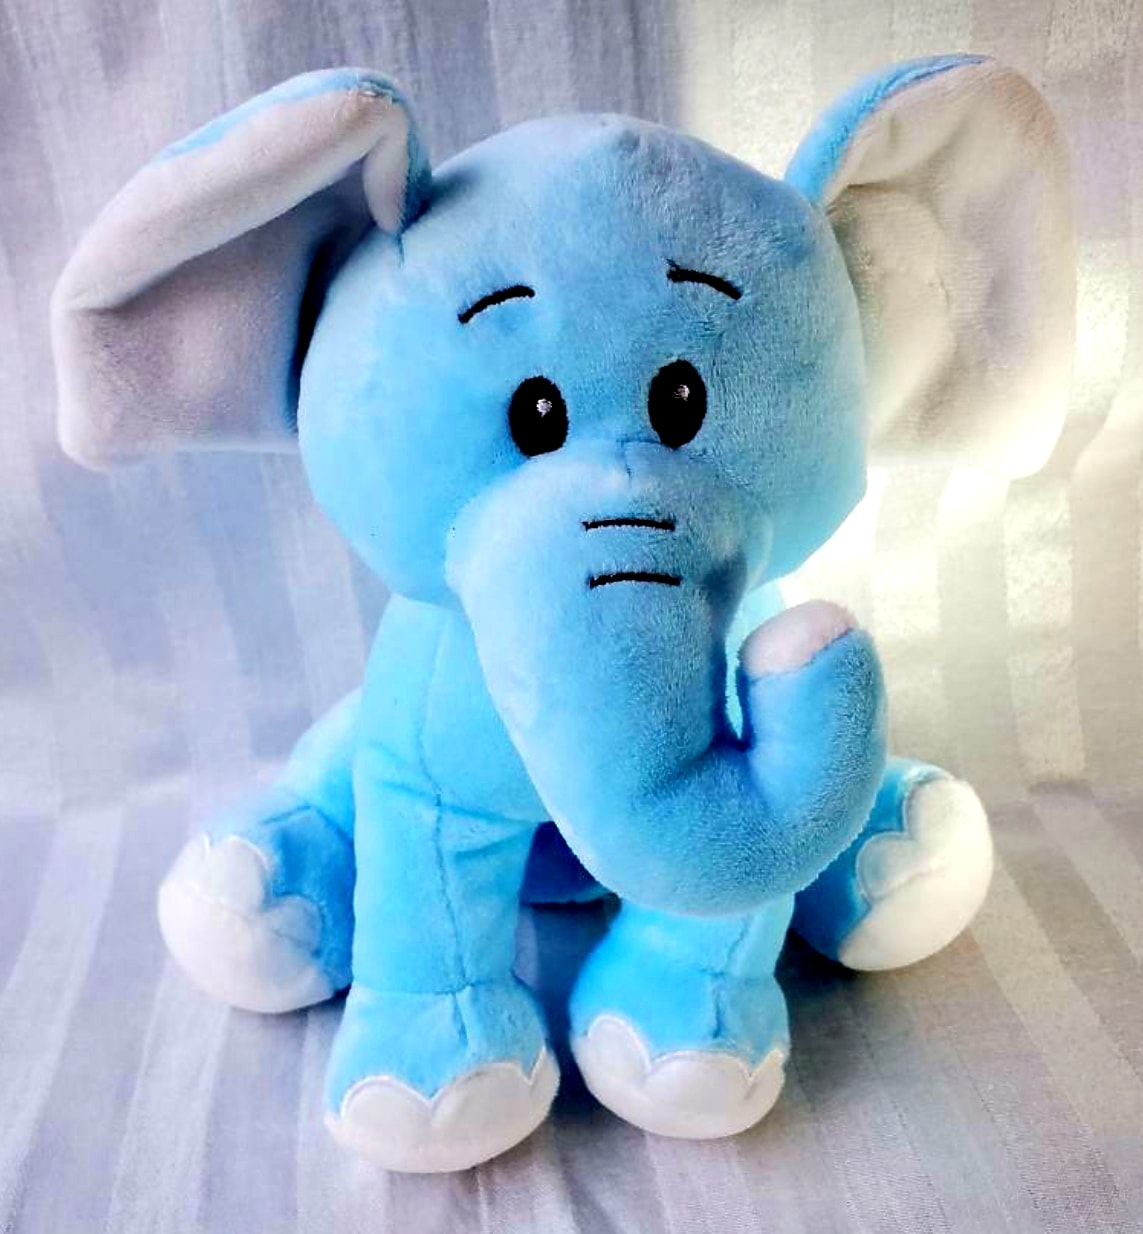 Plush Blue Elephant 11